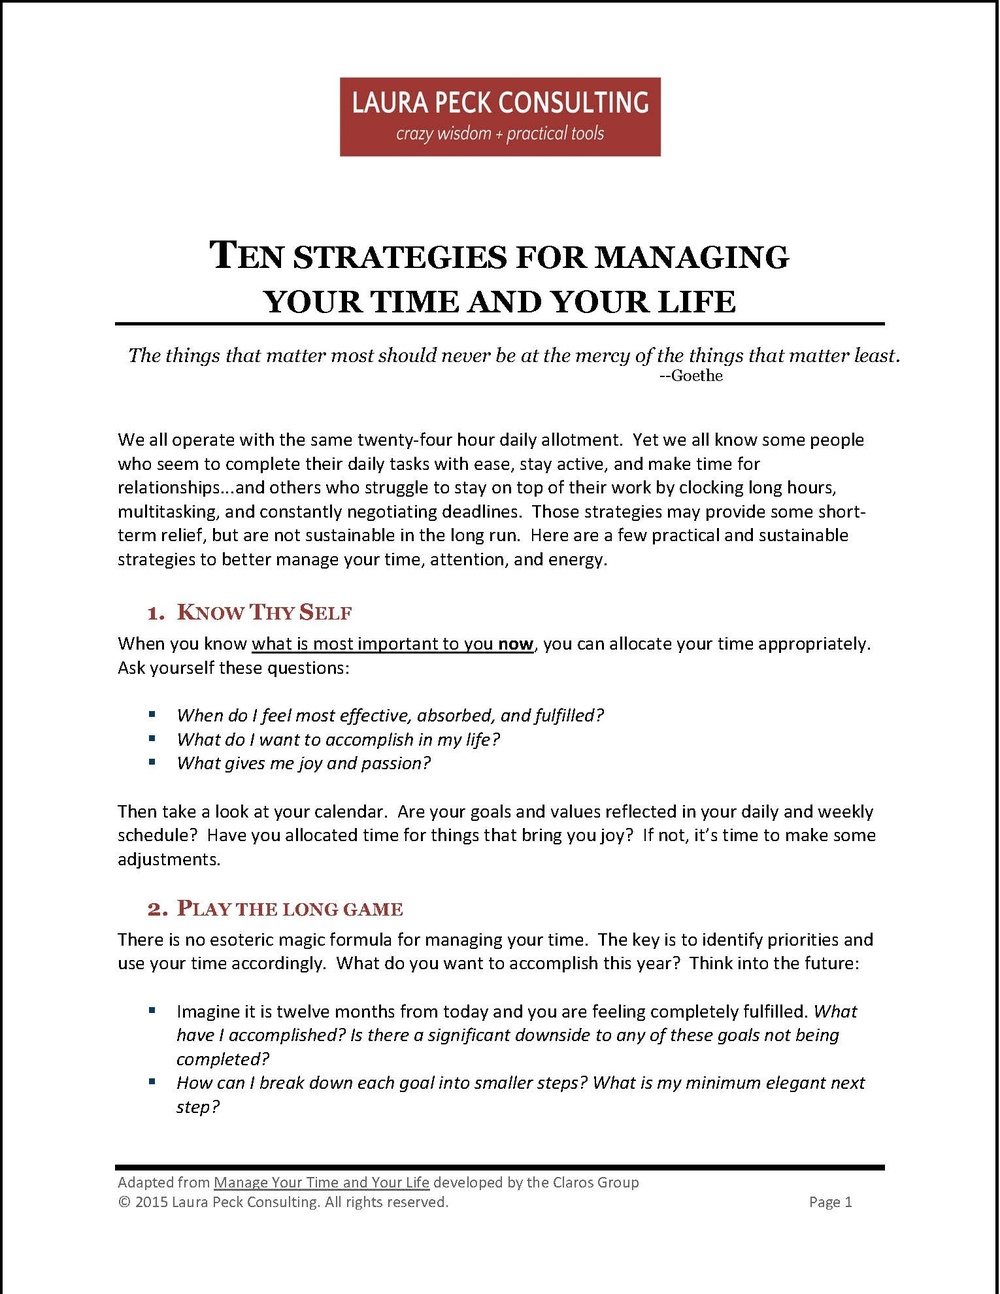 2_LPC_10 Strategies for Managing Your Time and Your Life_Page_1.jpg